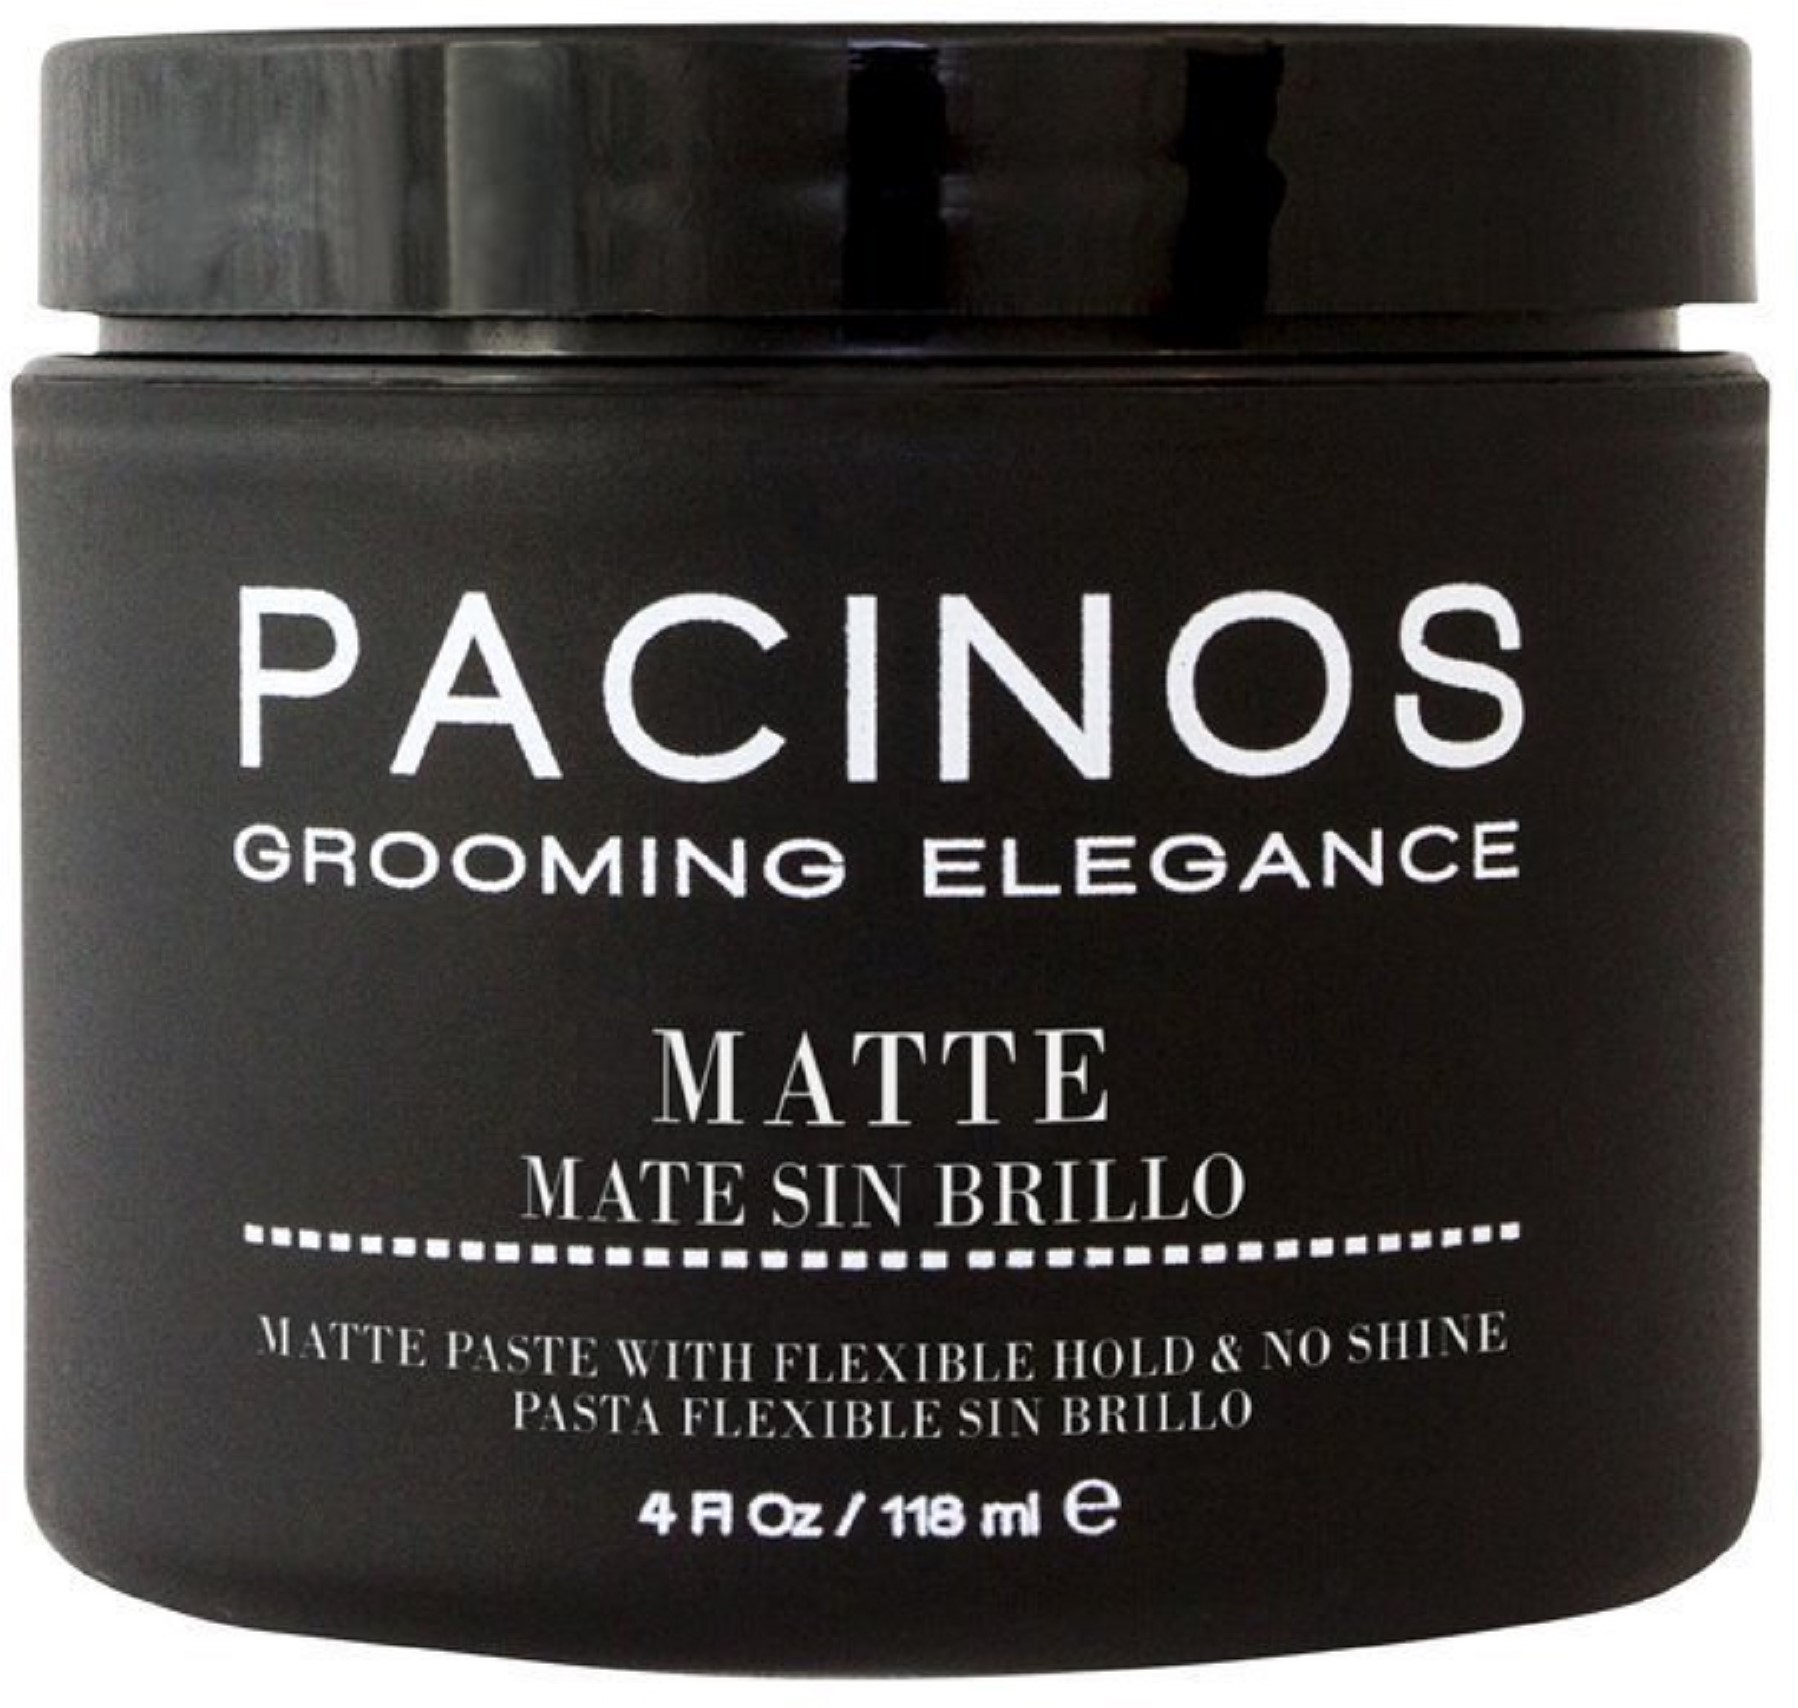 Pacinos Matte Styling Paste 4 oz